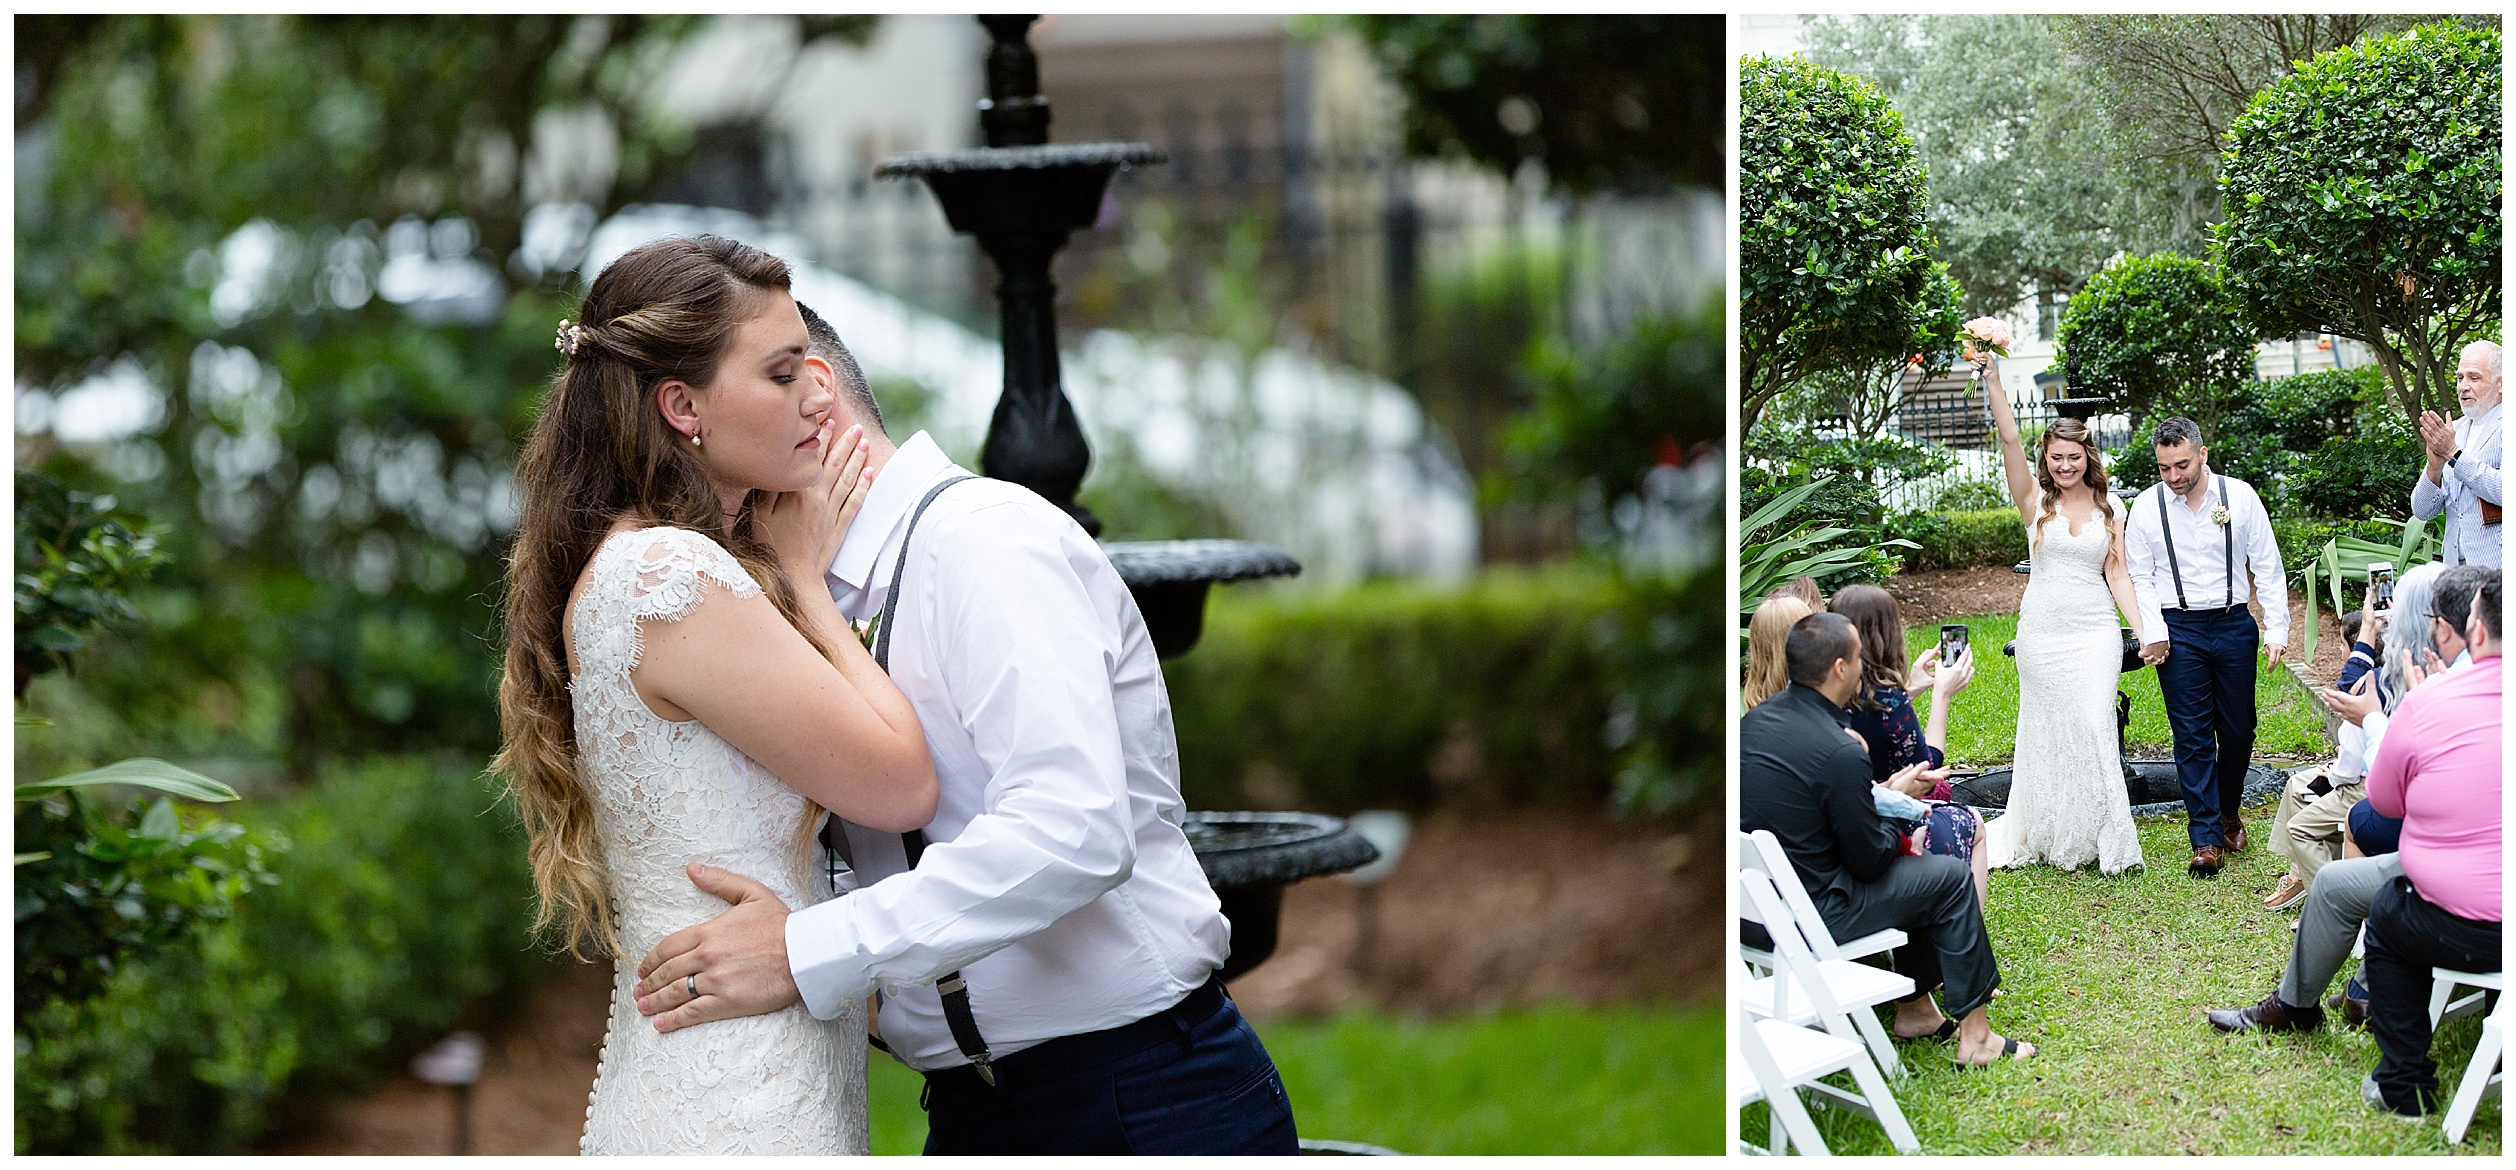 savannah wedding photographer forsyth park elopement-41.jpg